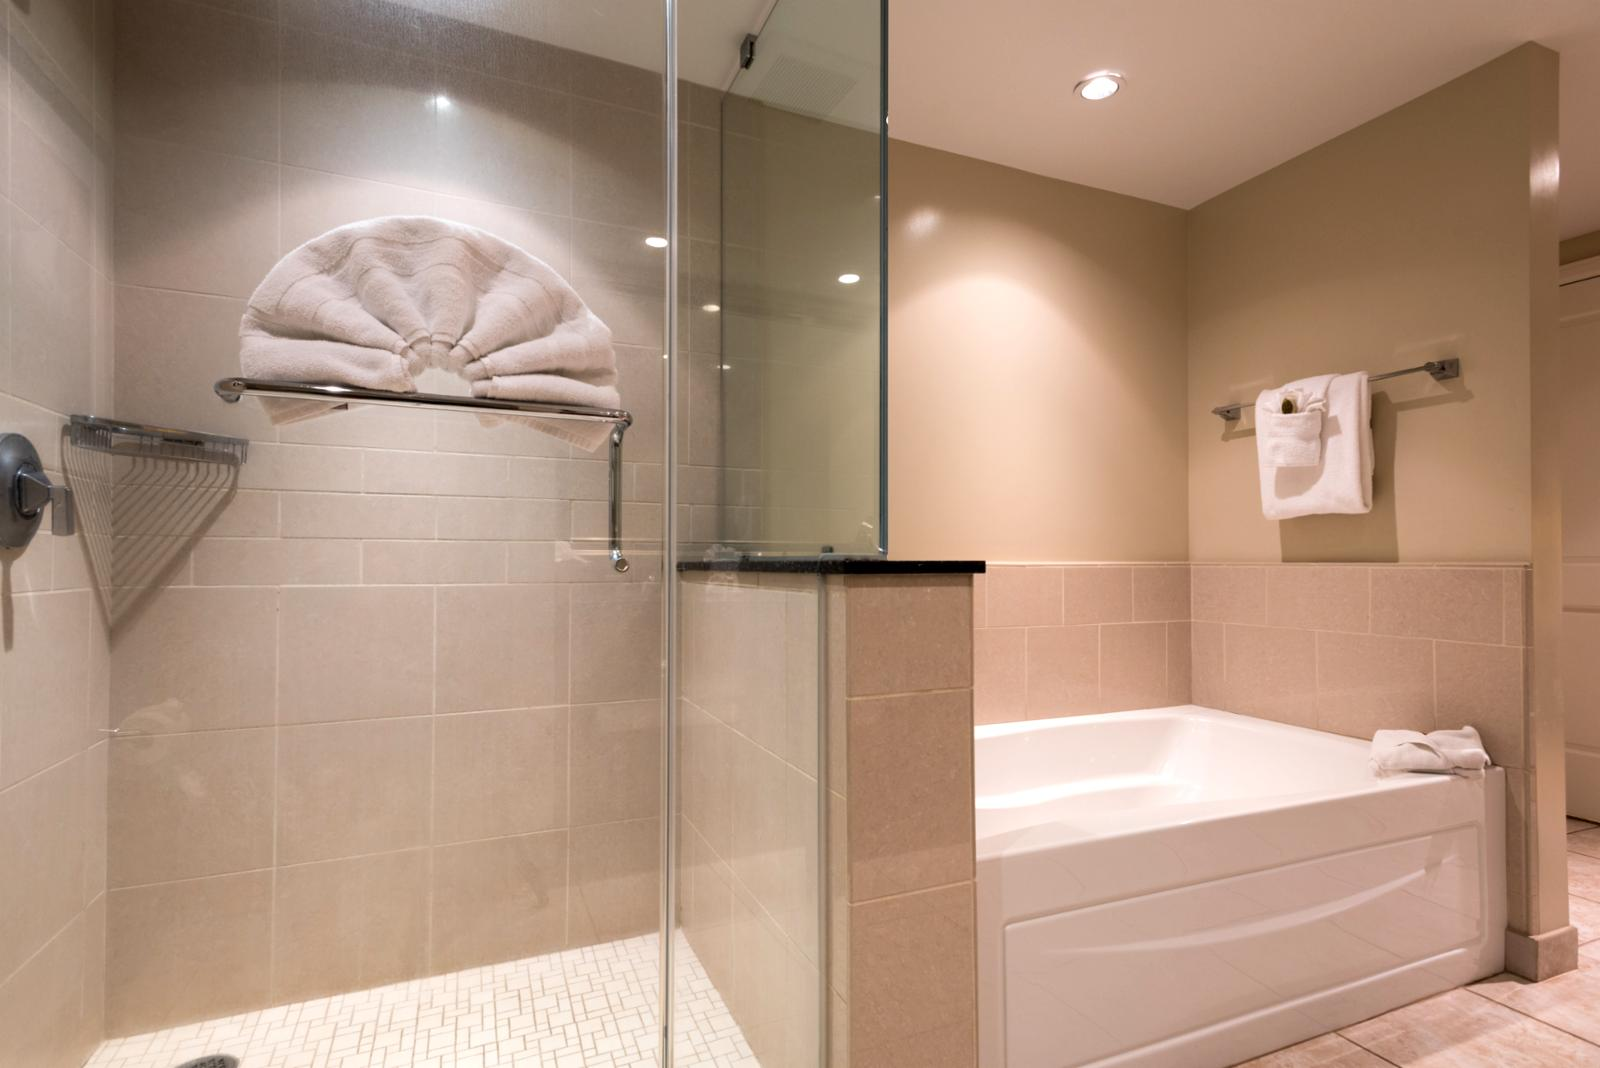 Shower and bath tub